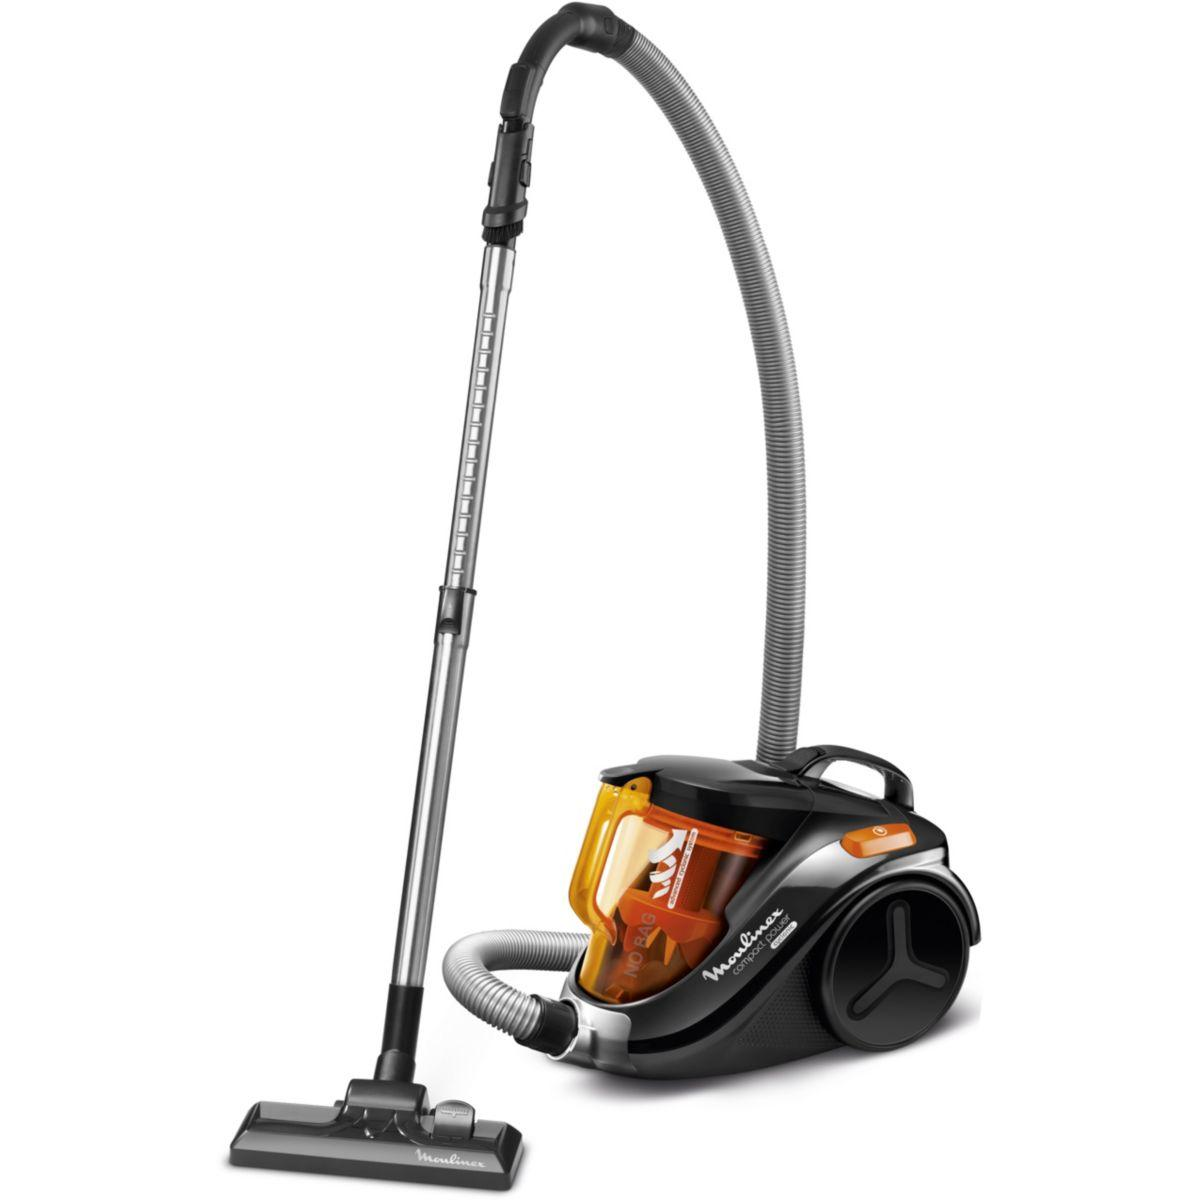 Aspirateur sans sac moulinex mo3723pa power cyclonic - 5% de r...